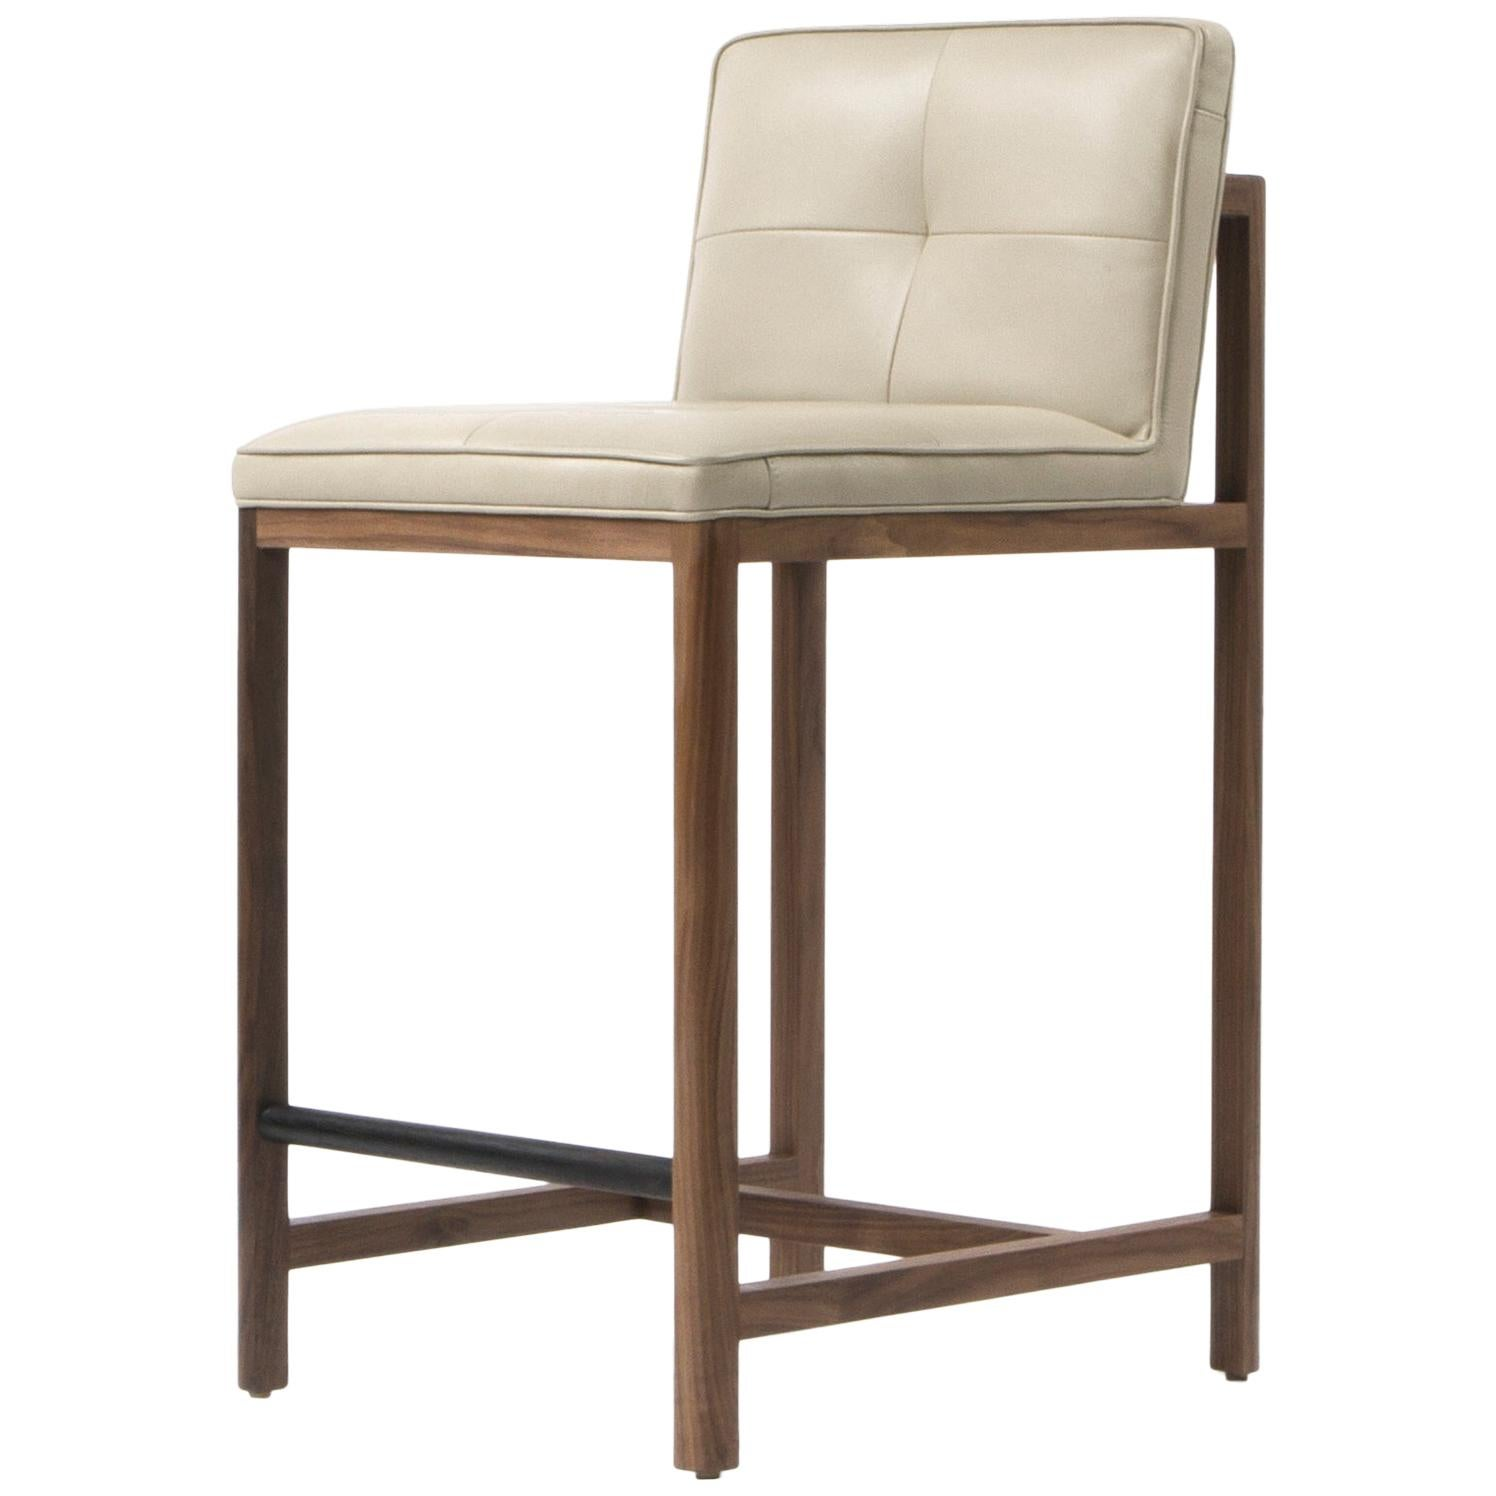 Wood Frame Counter Stool in Walnut and Leather Designed by Craig Bassam